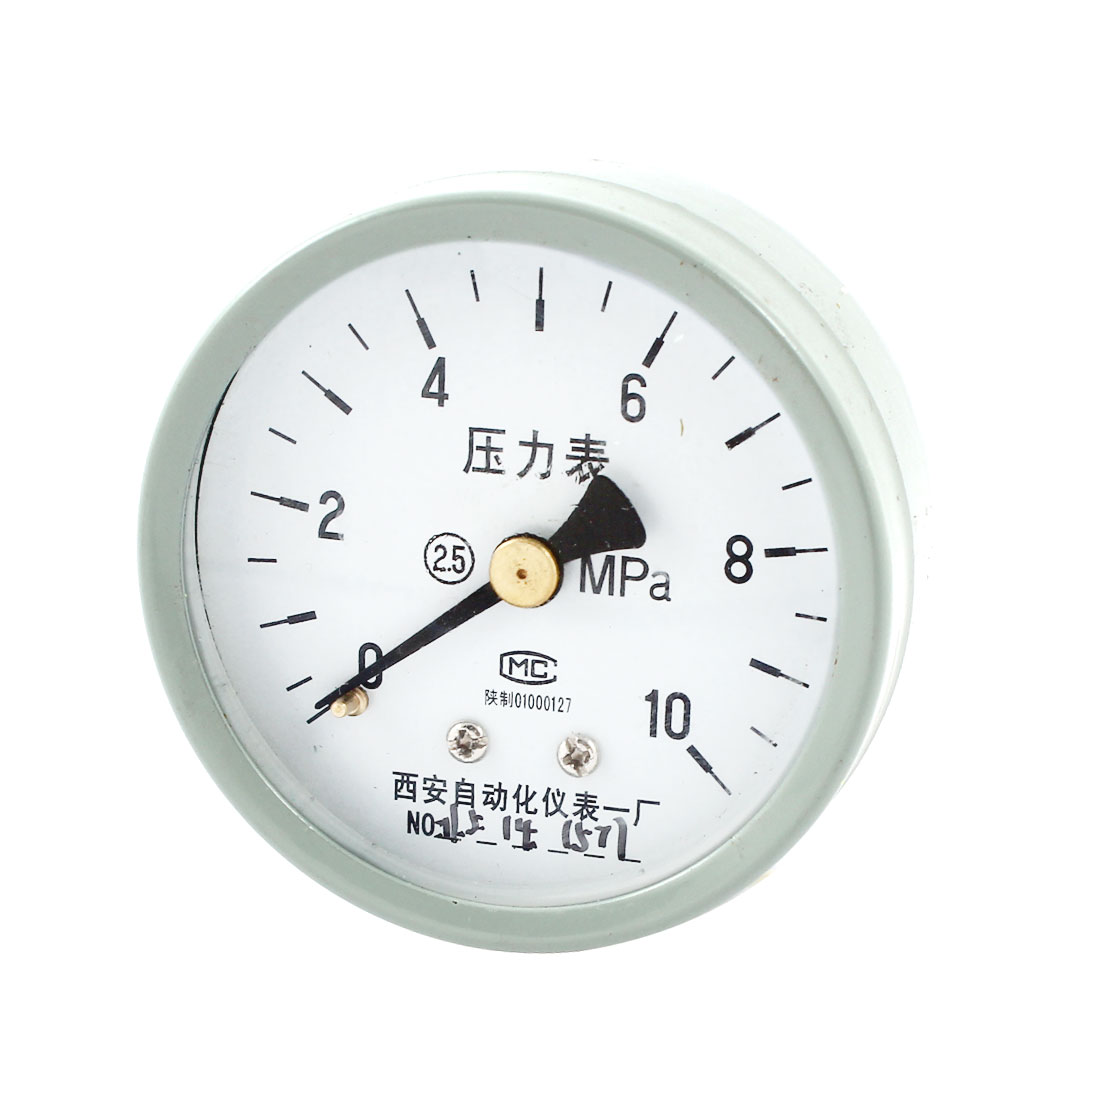 1/4PT Threaded 0-10Mpa Arabic Number Display Air Pressure Measuring Gaug